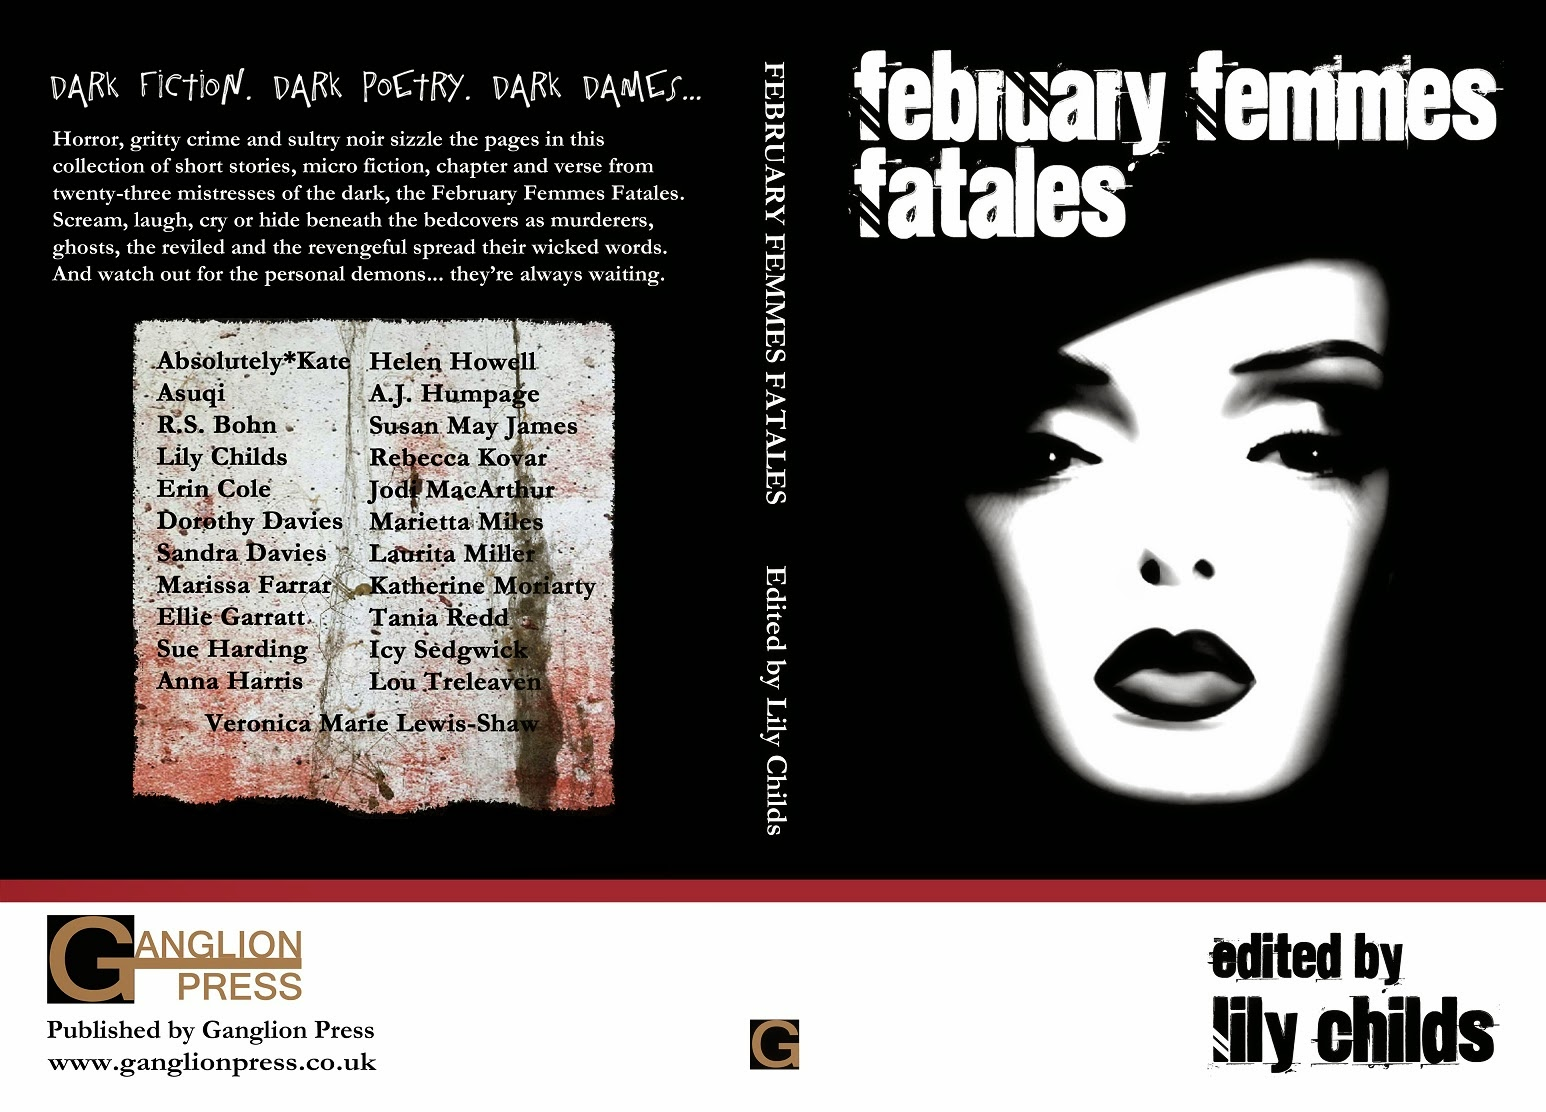 The cover of the February Femmes Fatales paperback